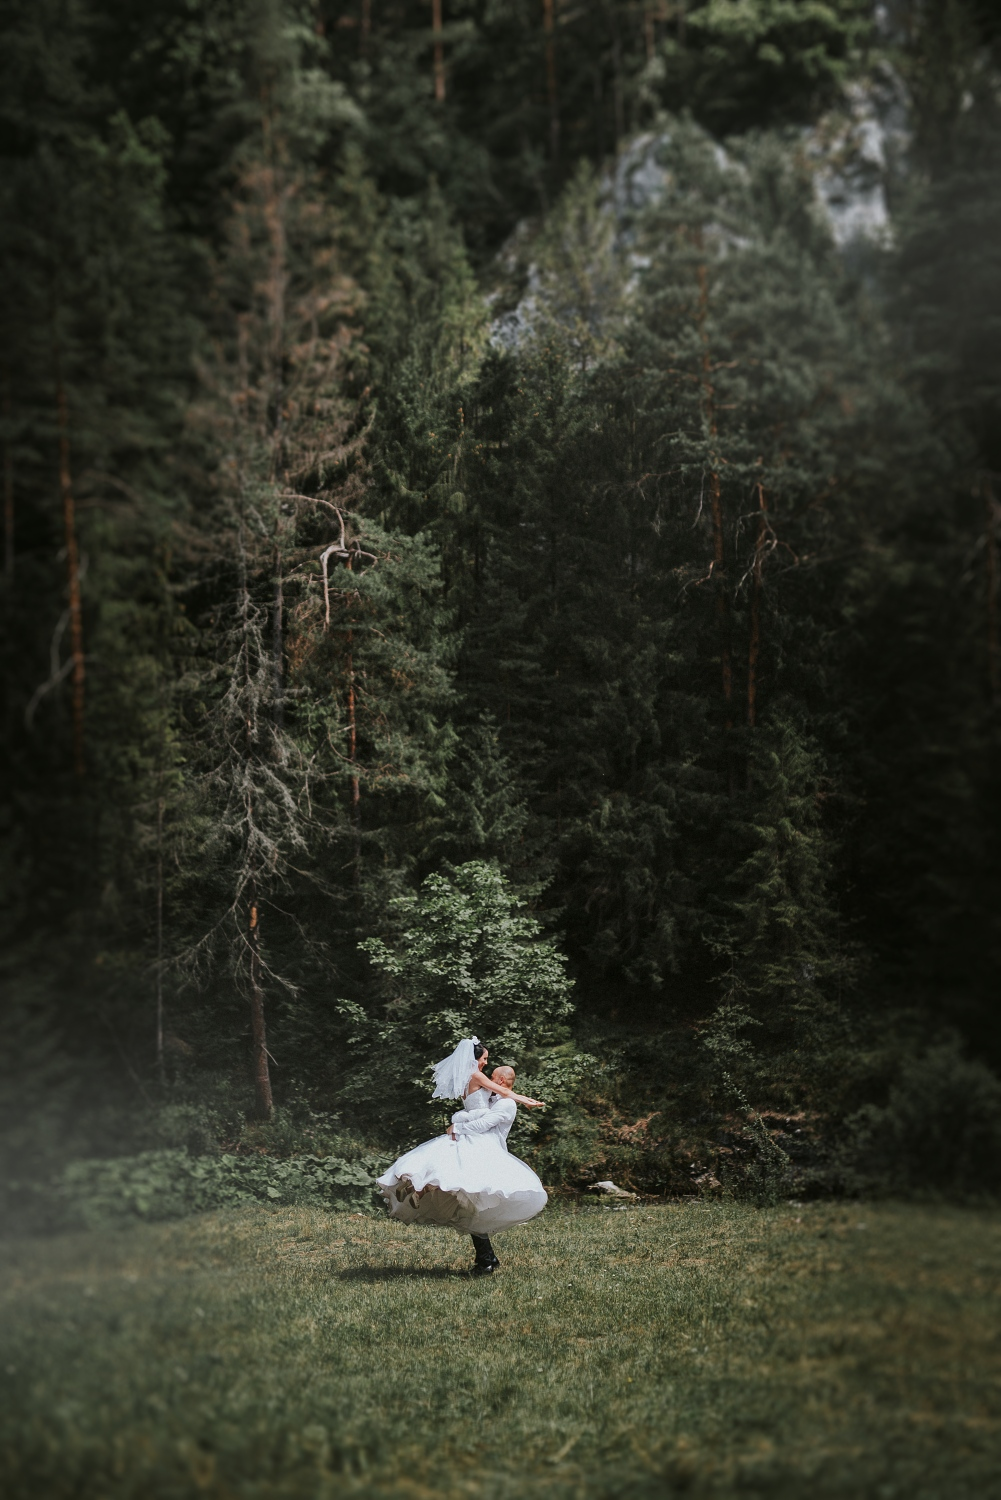 Lubos Krahulec, svadobny fotograf, fotograf vychod, slovensko, slovakia, czech, europan, presov, wedding, natural wedding portrait, best wedding photo, asociacia slovenskych svadobnych fotografov, cech fotografov, fotograf krahulec,